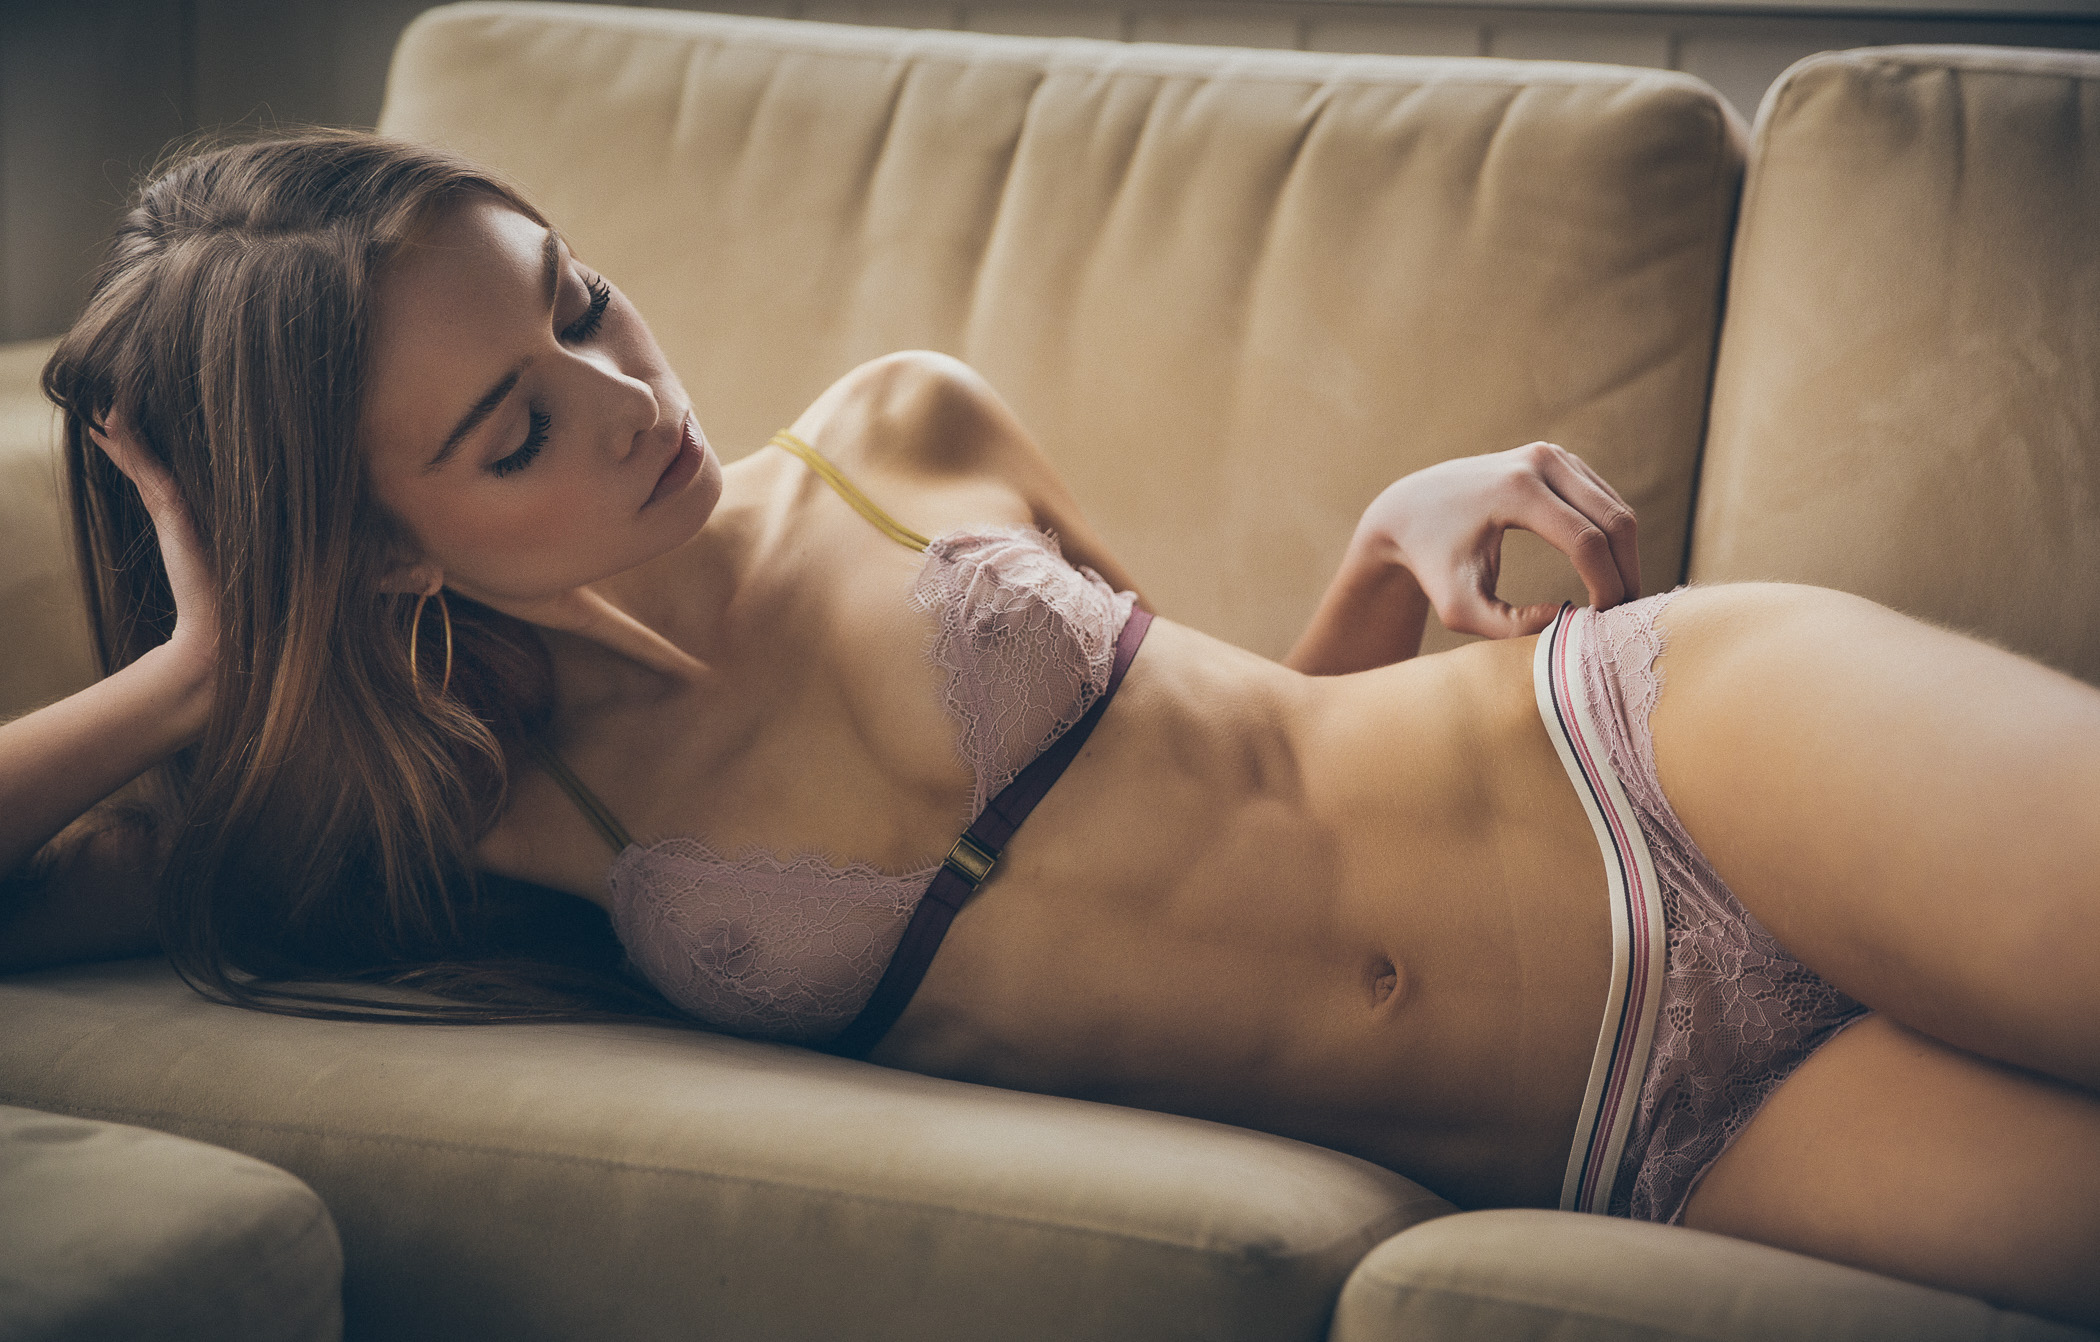 cool girl in see through lingerie